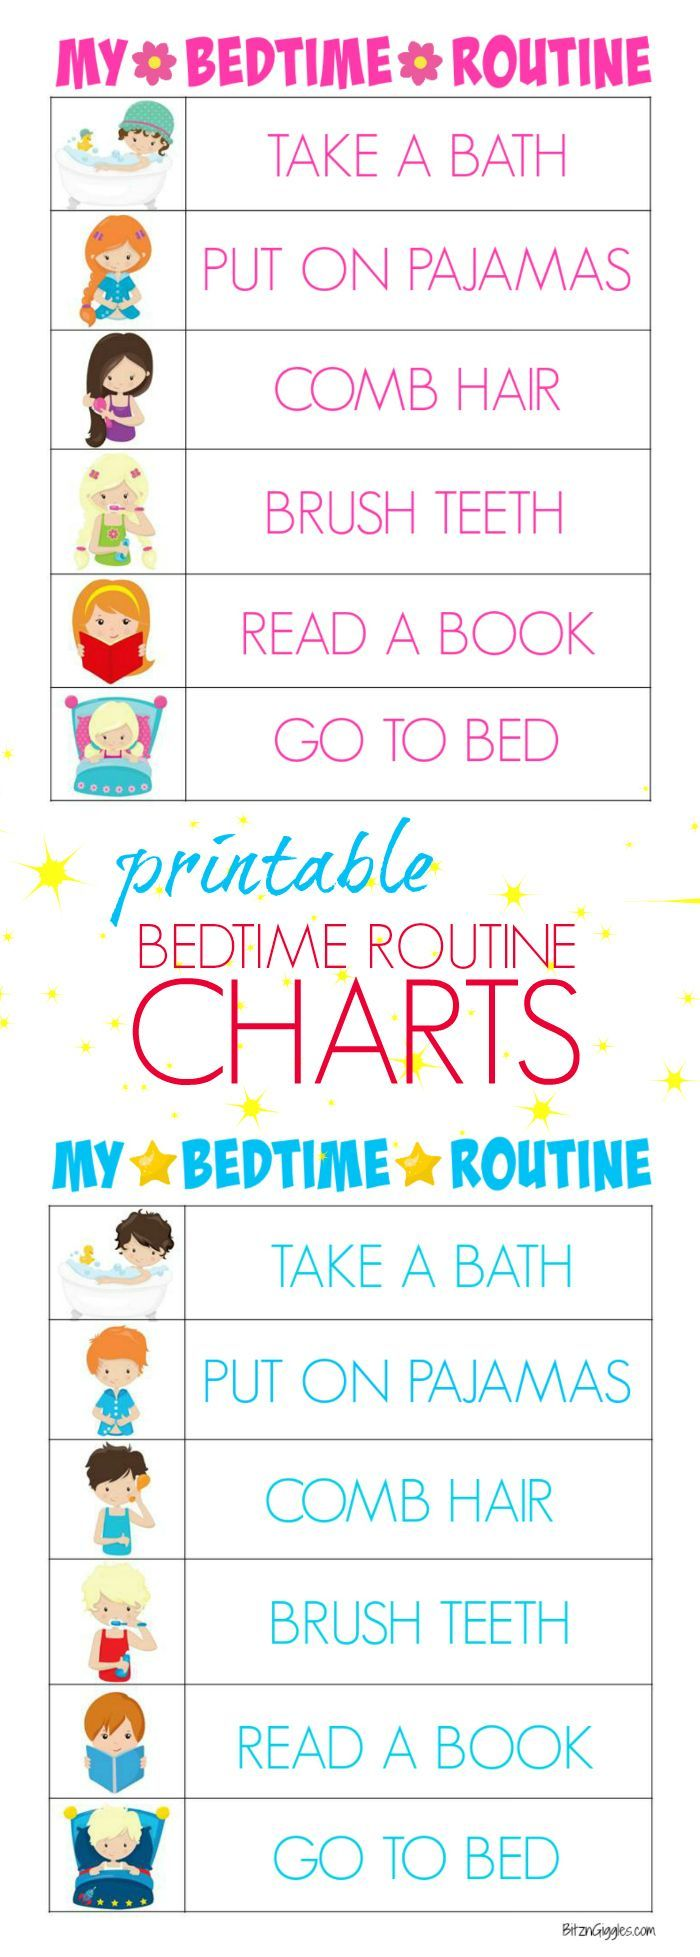 Printable Bedtime Routine Charts - Free printable kids bedtime routine charts to help teach kids independence and provide guidance for their evening routine! Charts for boys and girls! #Read2Me #ad